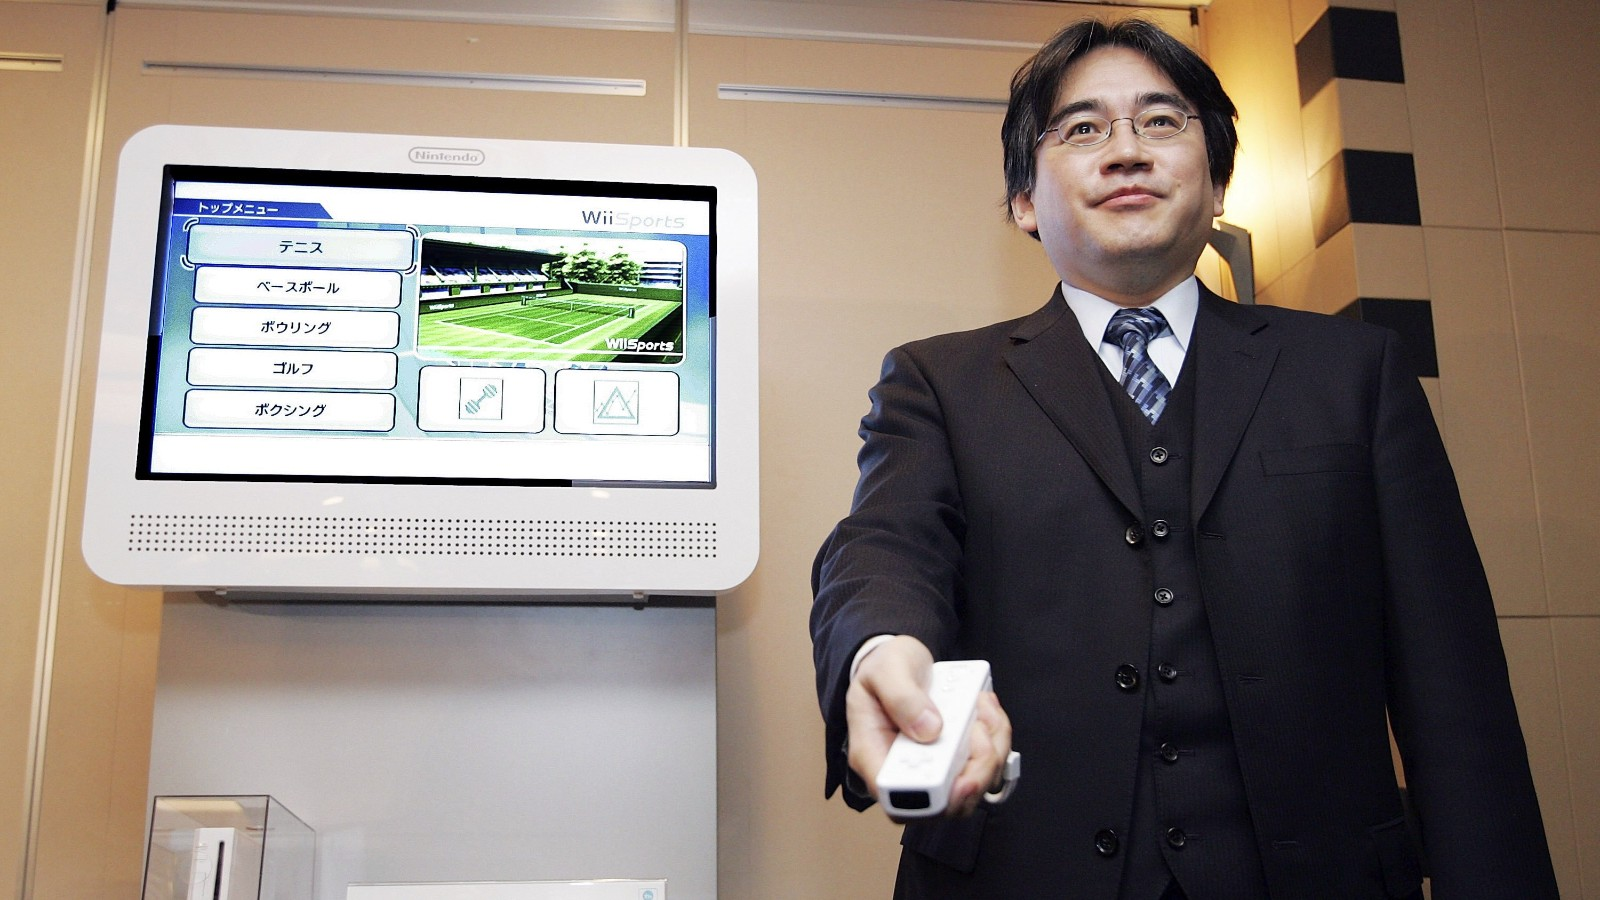 Satoru Iwata's Wii reveal at TGS 2005 lead to him being banned from  presenting keynotes ever again | GoNintendo